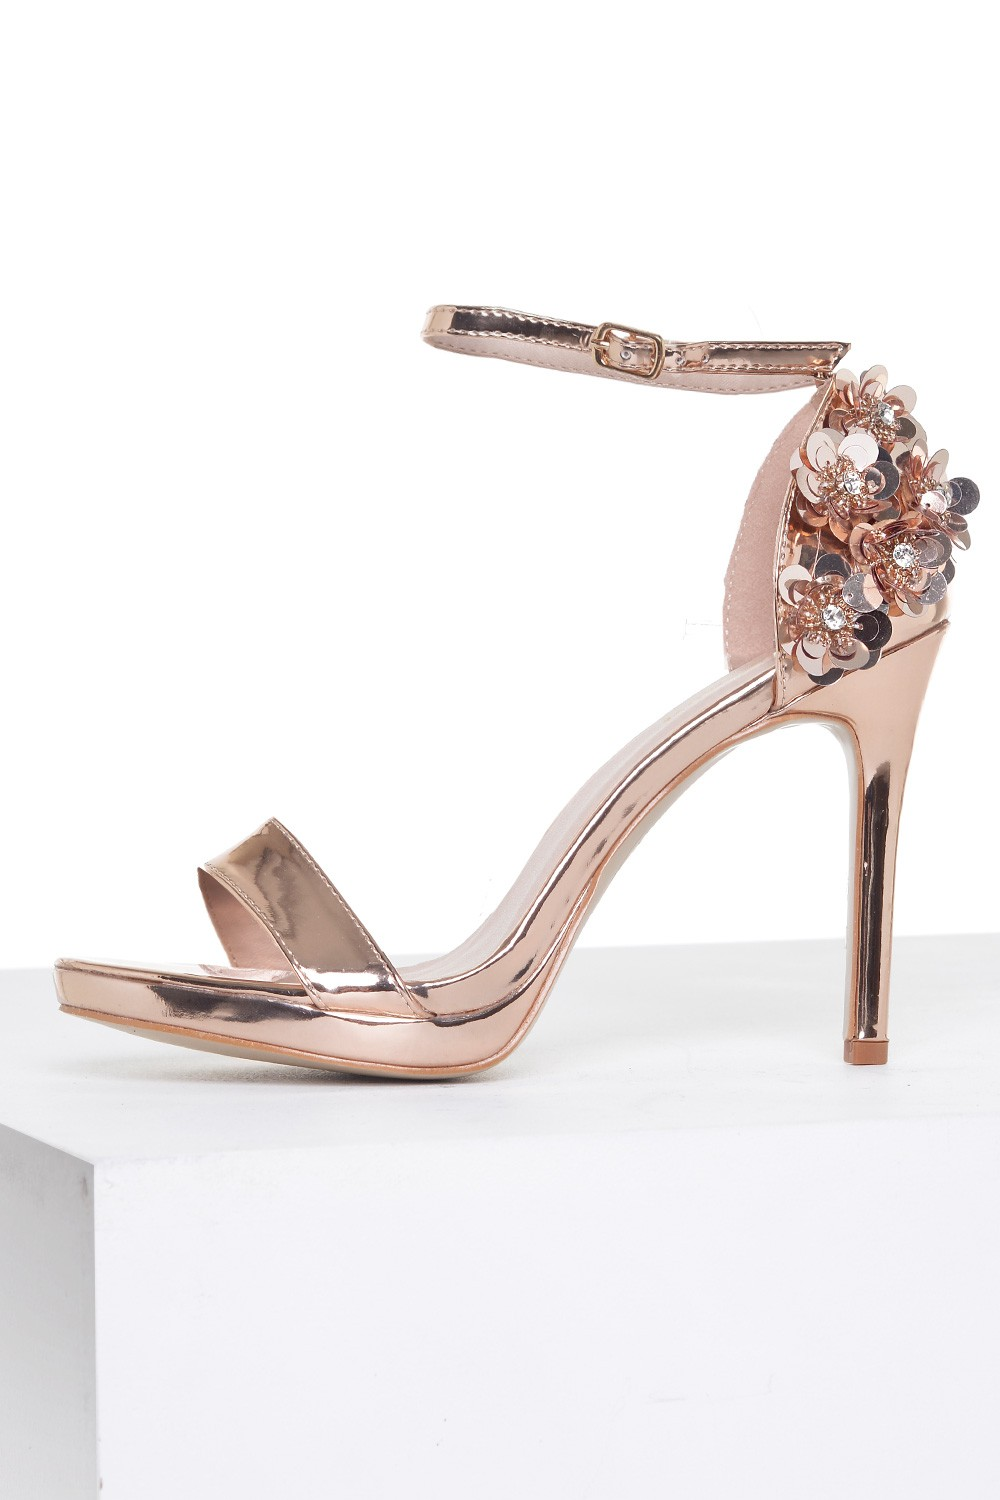 4397f1836f3771 Sole City Pippa Embellished Heel Sandals in Rose Gold